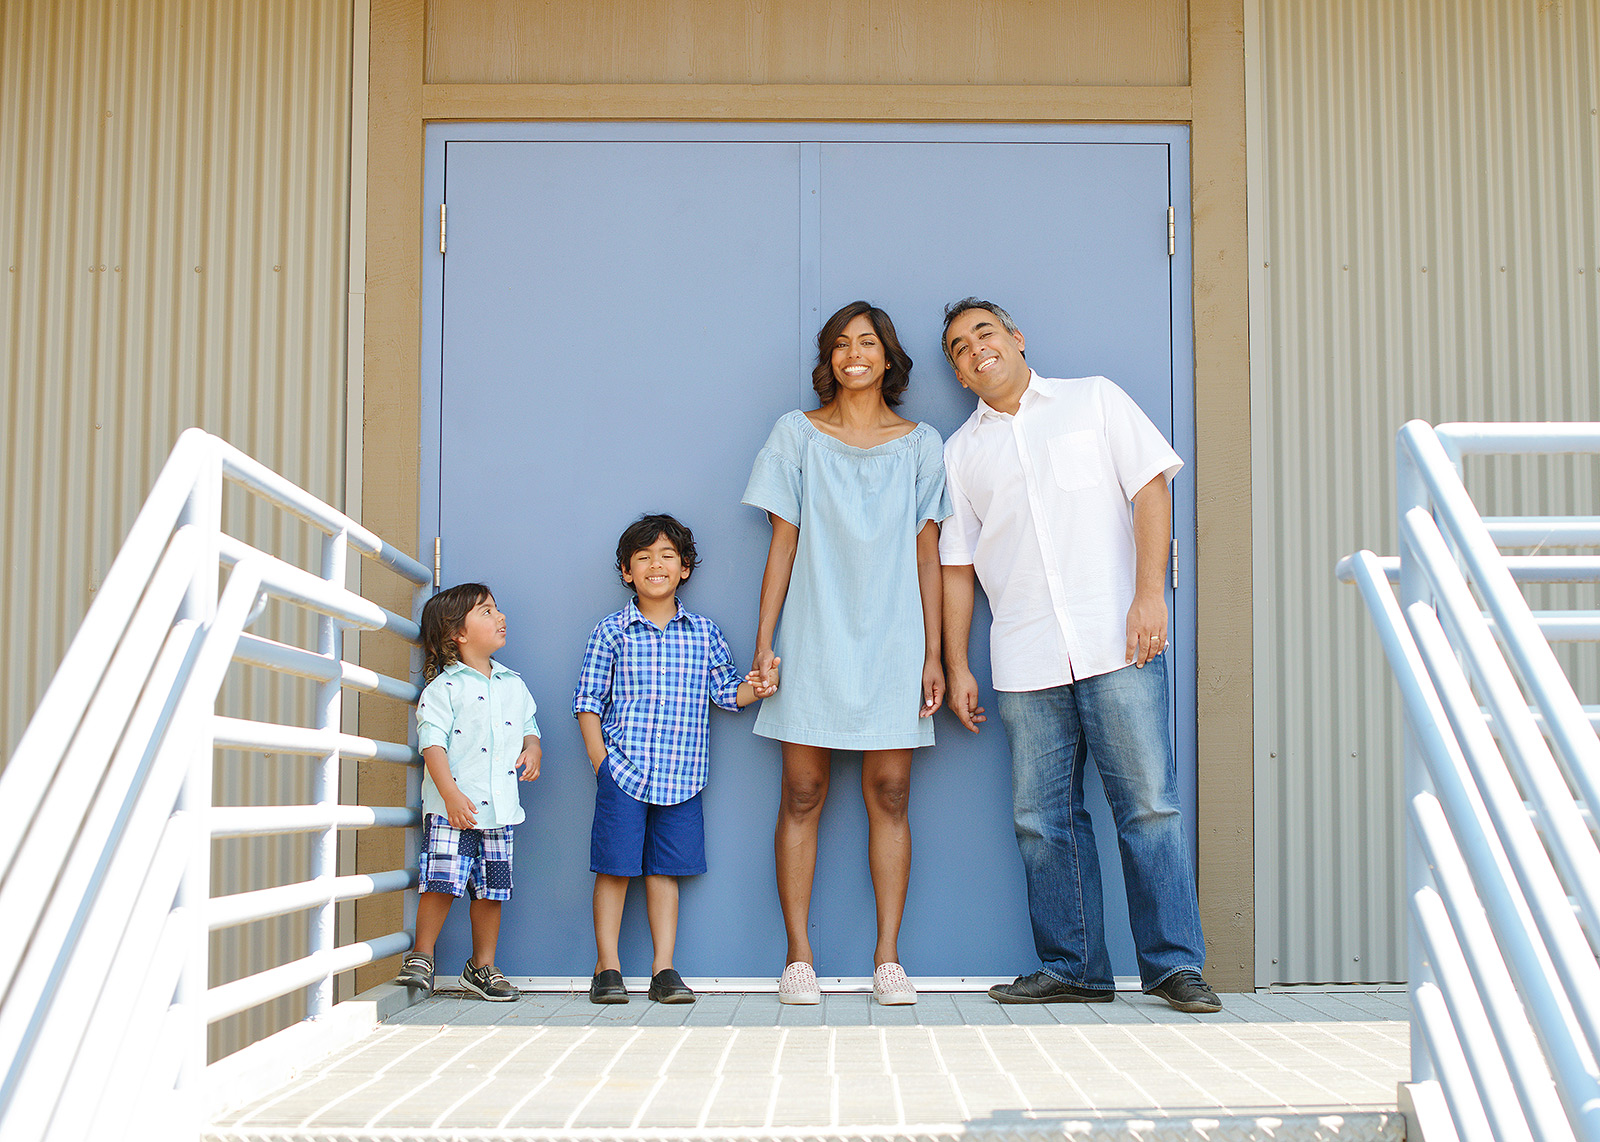 Family portrait in front of baby blue door stairway at Folsom Powerhouse